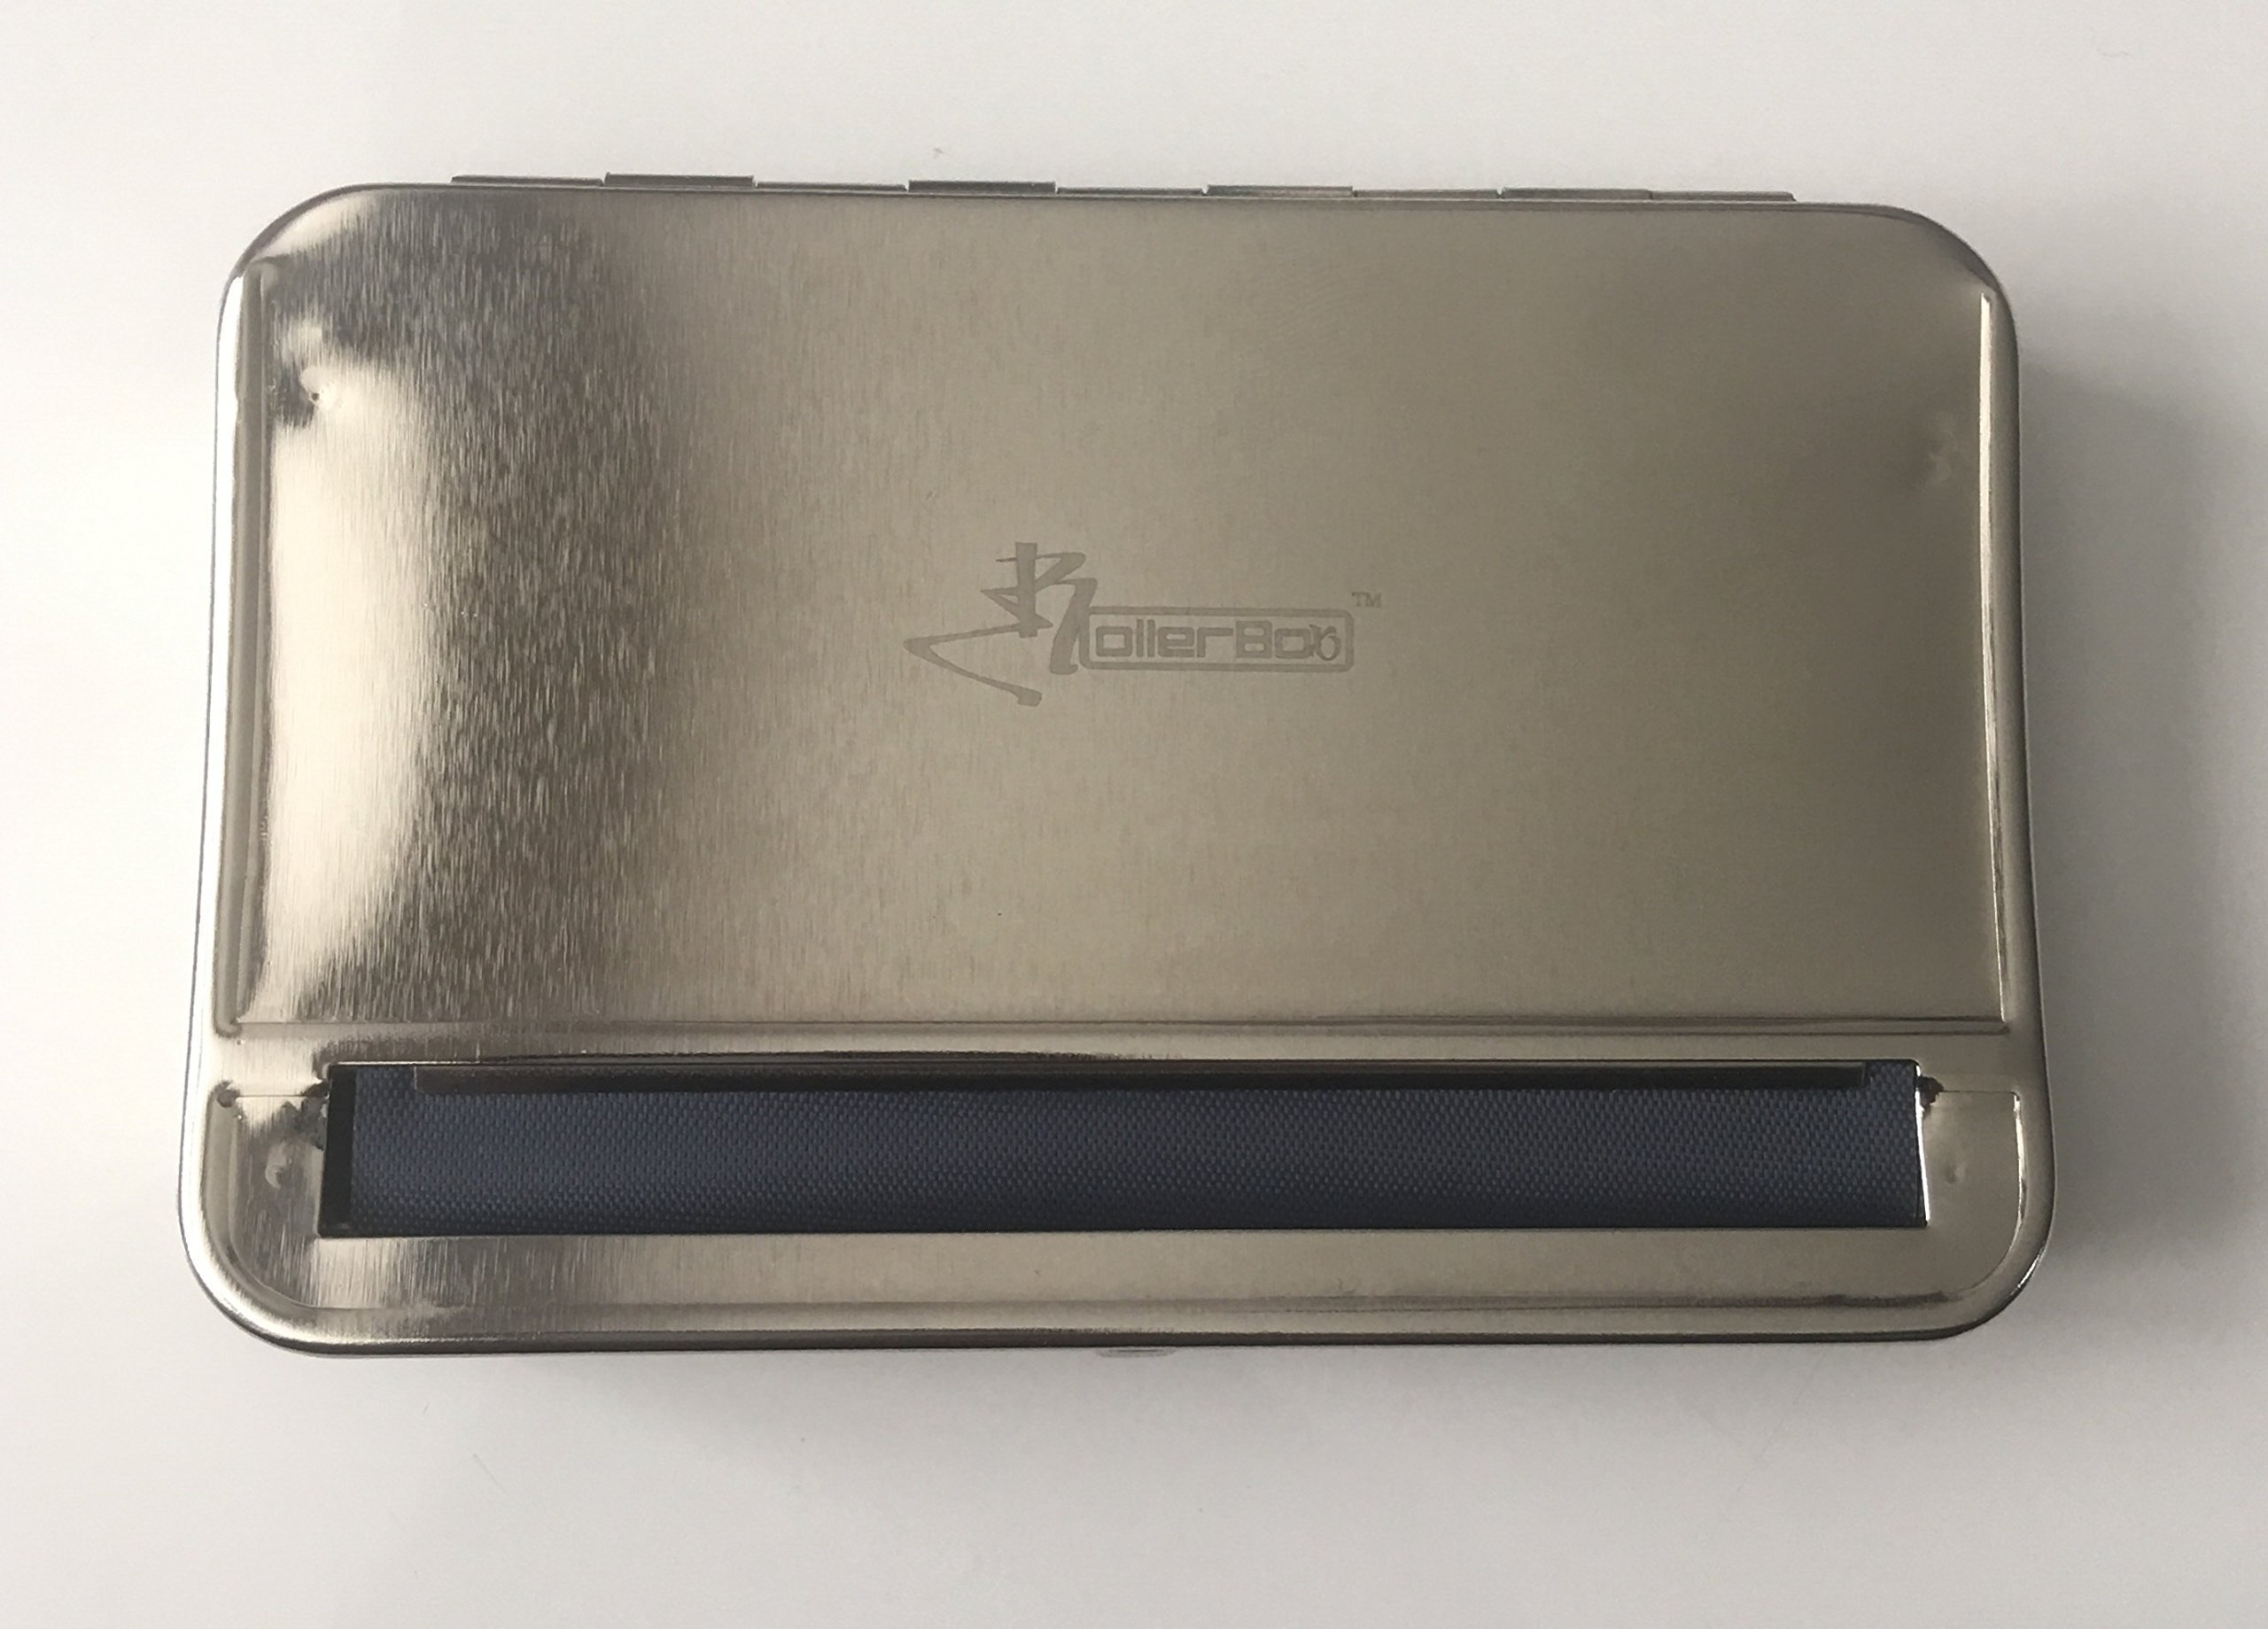 The RollerBox, Silver, Large, Adjustable, Automatic cigarette roller, Rolls and stores up to 110mm King Sized Cigarette